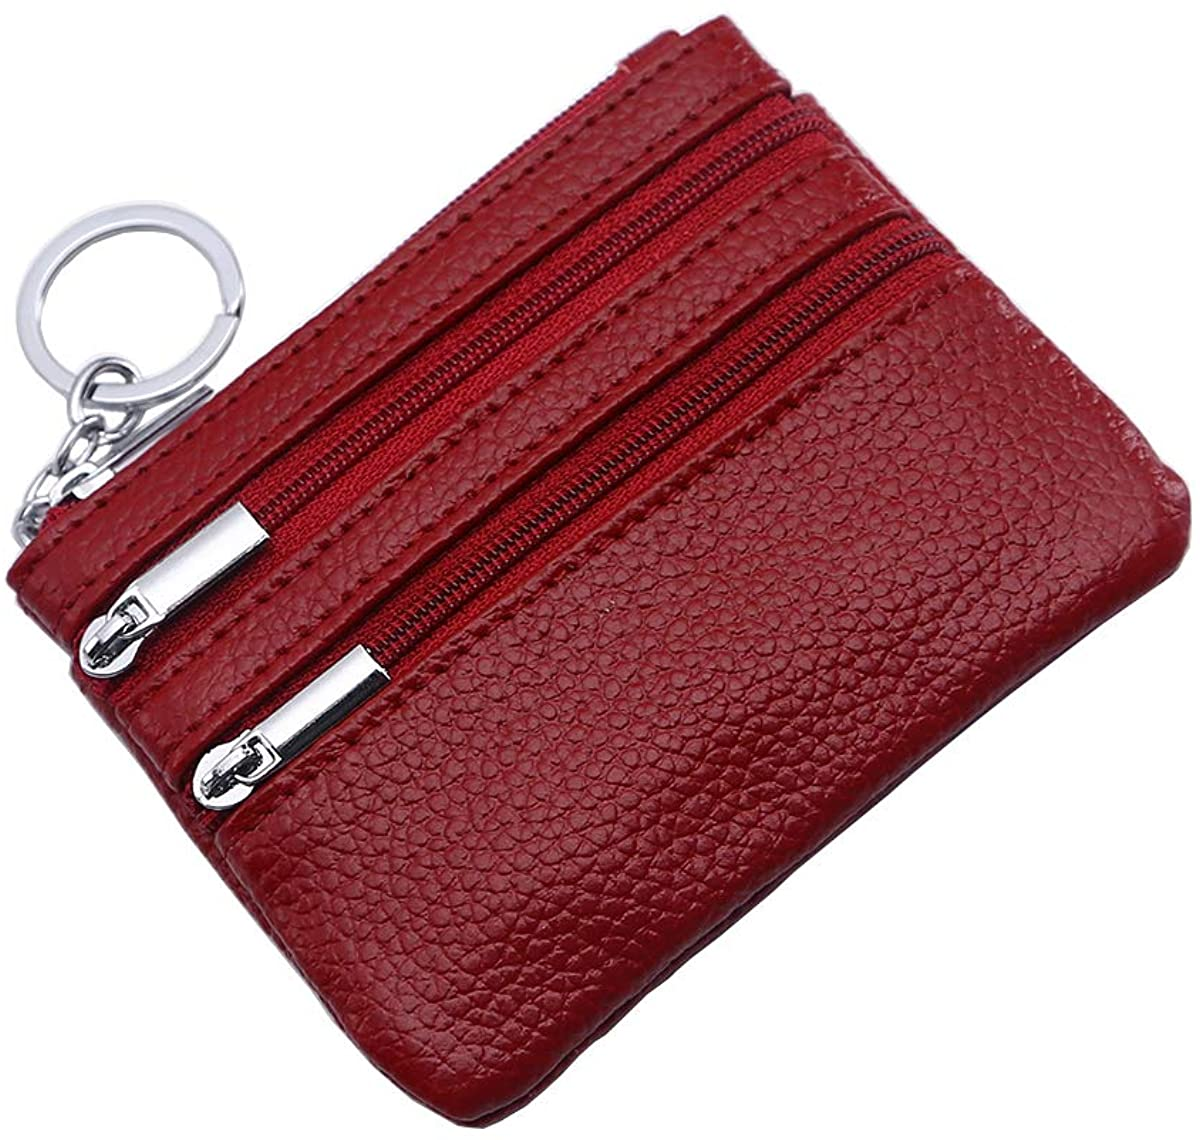 Vogbel Women's Coin Purse Leather Change Wallet, Coin Pouch with Zipper